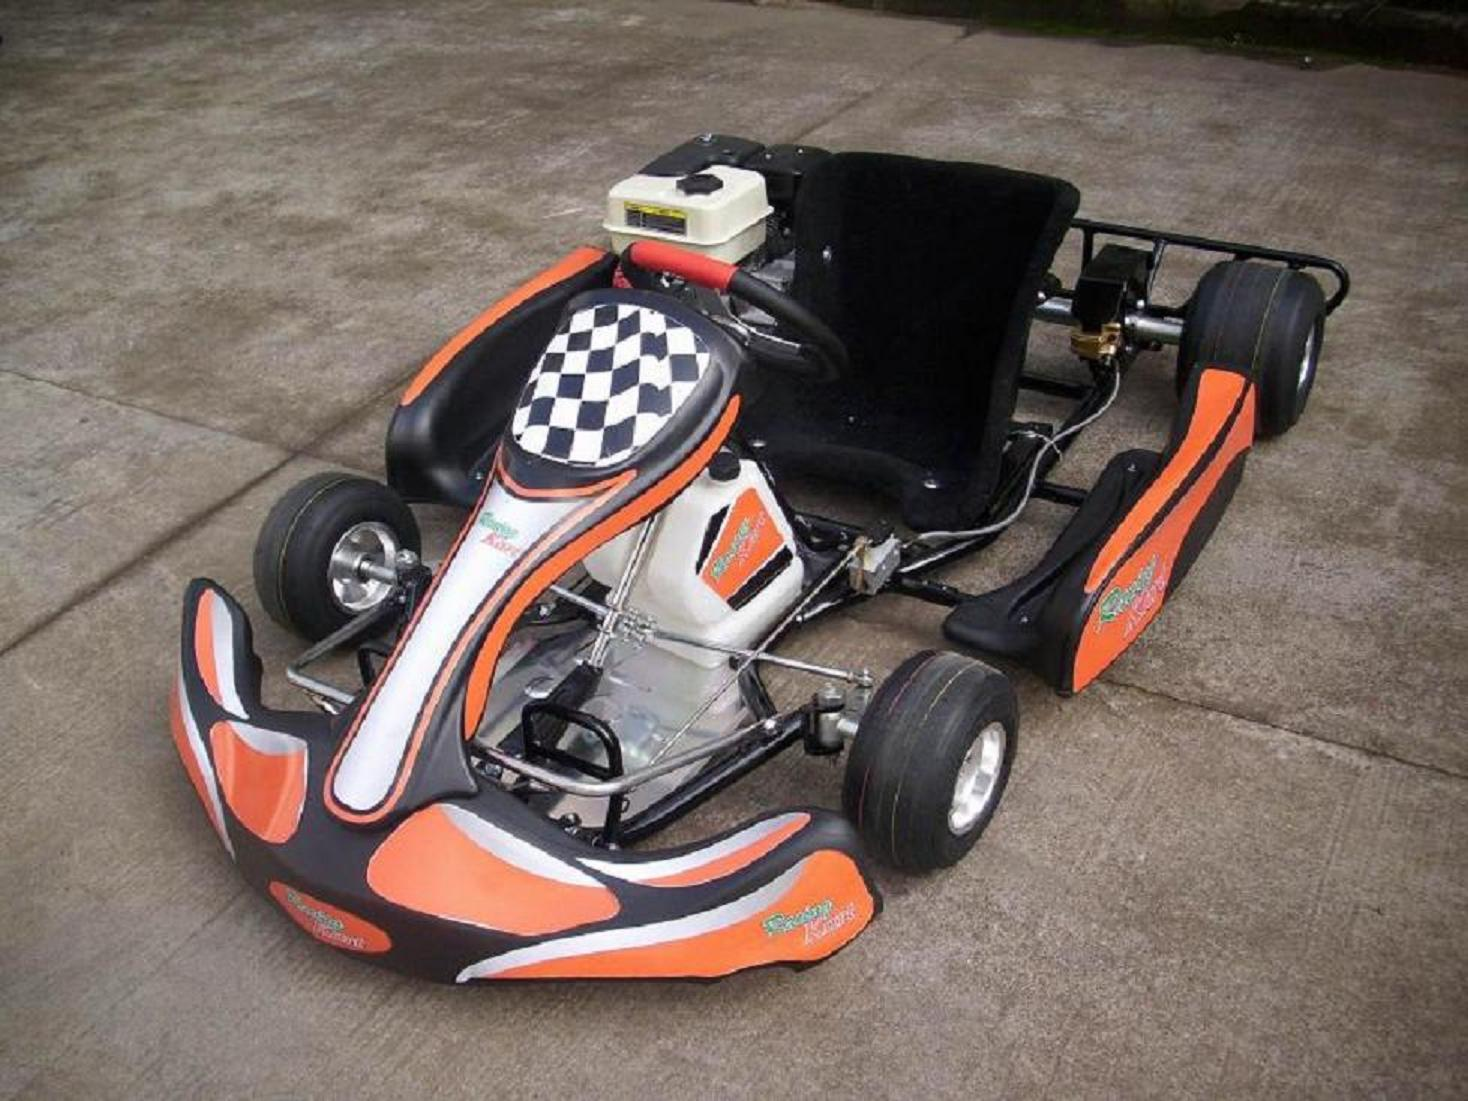 GO kart 200cc track Racing Cart F1 Racing Kart Single seat racer